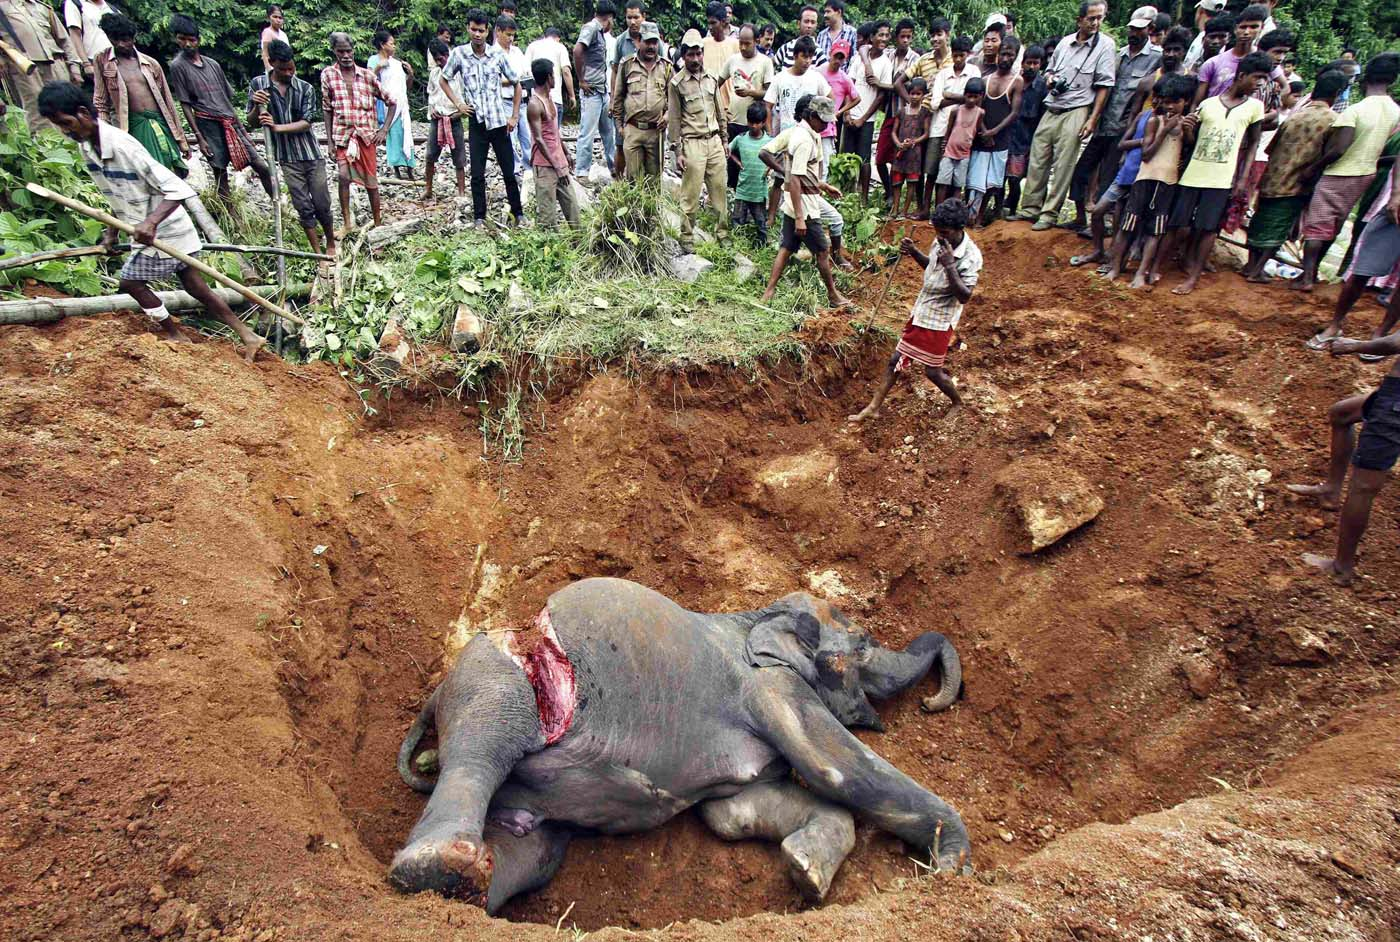 August 2 Photo Brief: Elephant burial, Kofi Annan steps down as UN-Arab League envoy and Day 6 at the Olympics